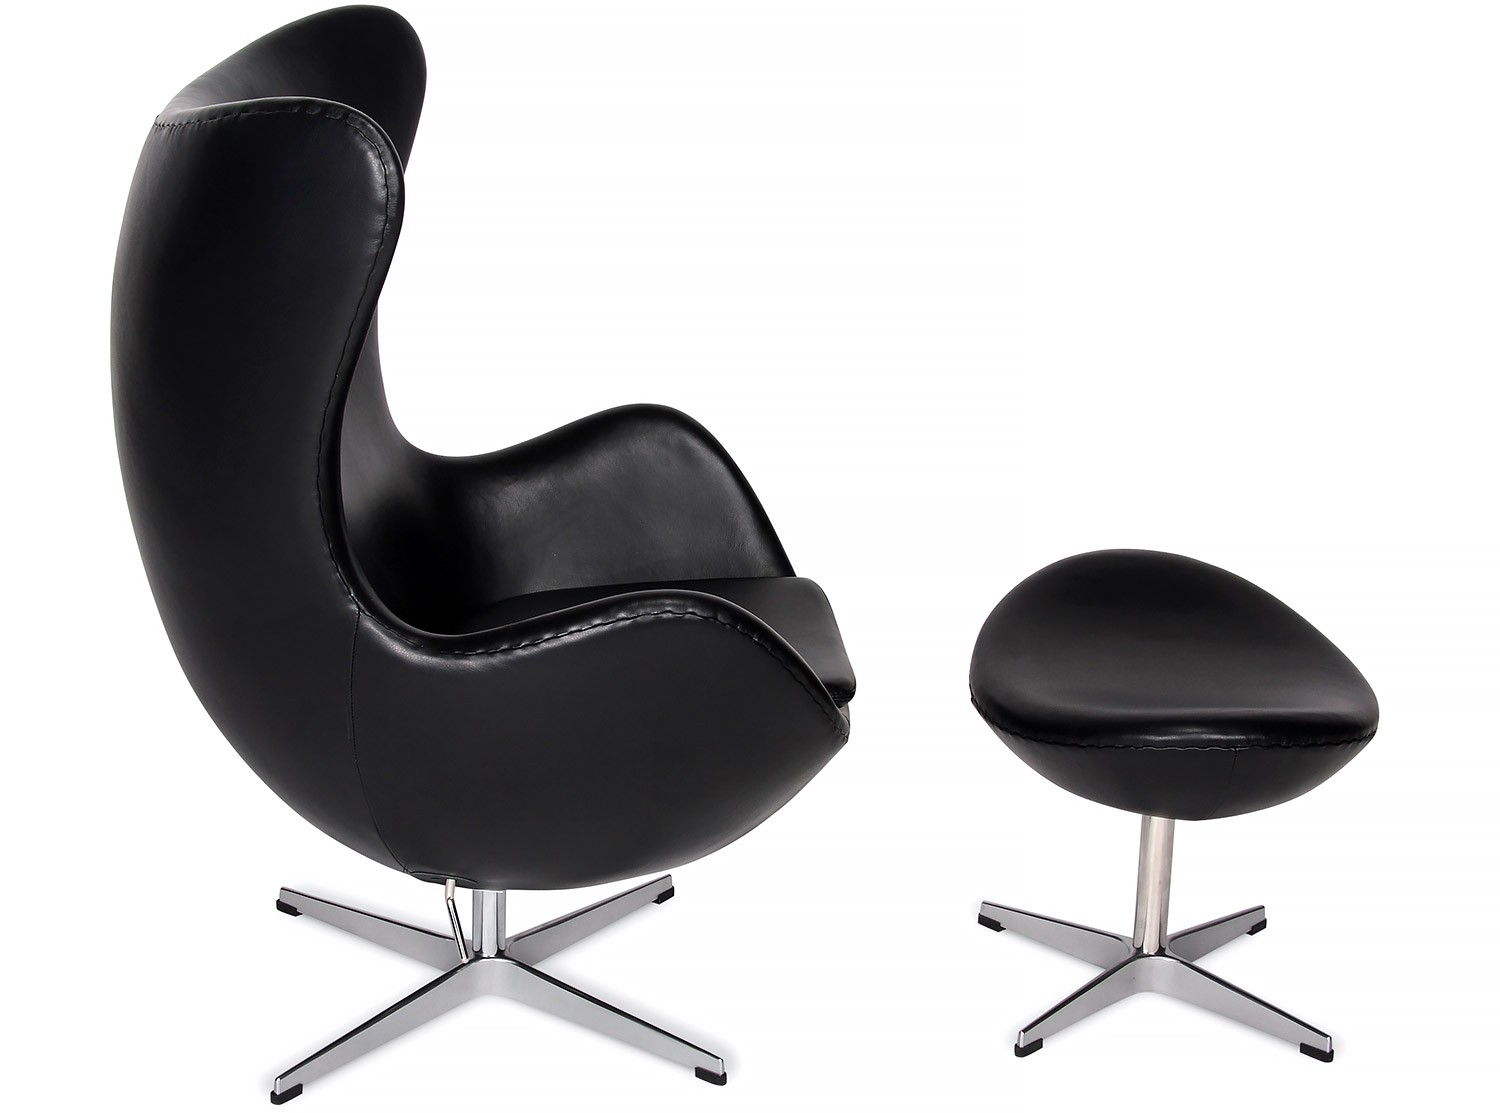 Arne Jacobsen Egg Chair Replica Egg Chair By Arne Jacobsen Leather Platinum Replica Brown